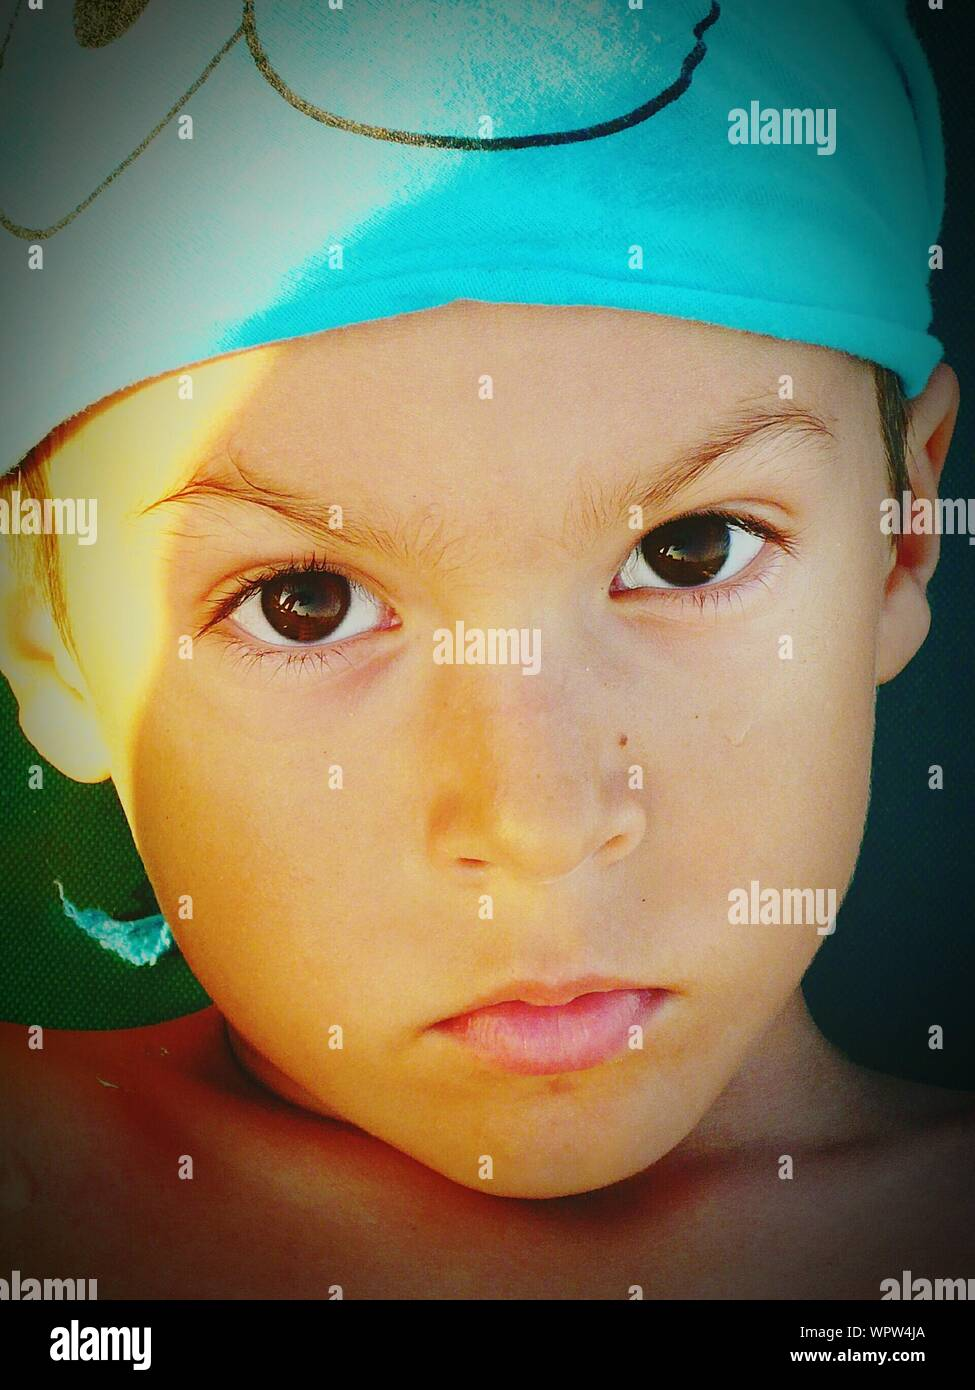 Close-up Portrait Of Serious Boy Wearing Turquoise Headwear Stock Photo